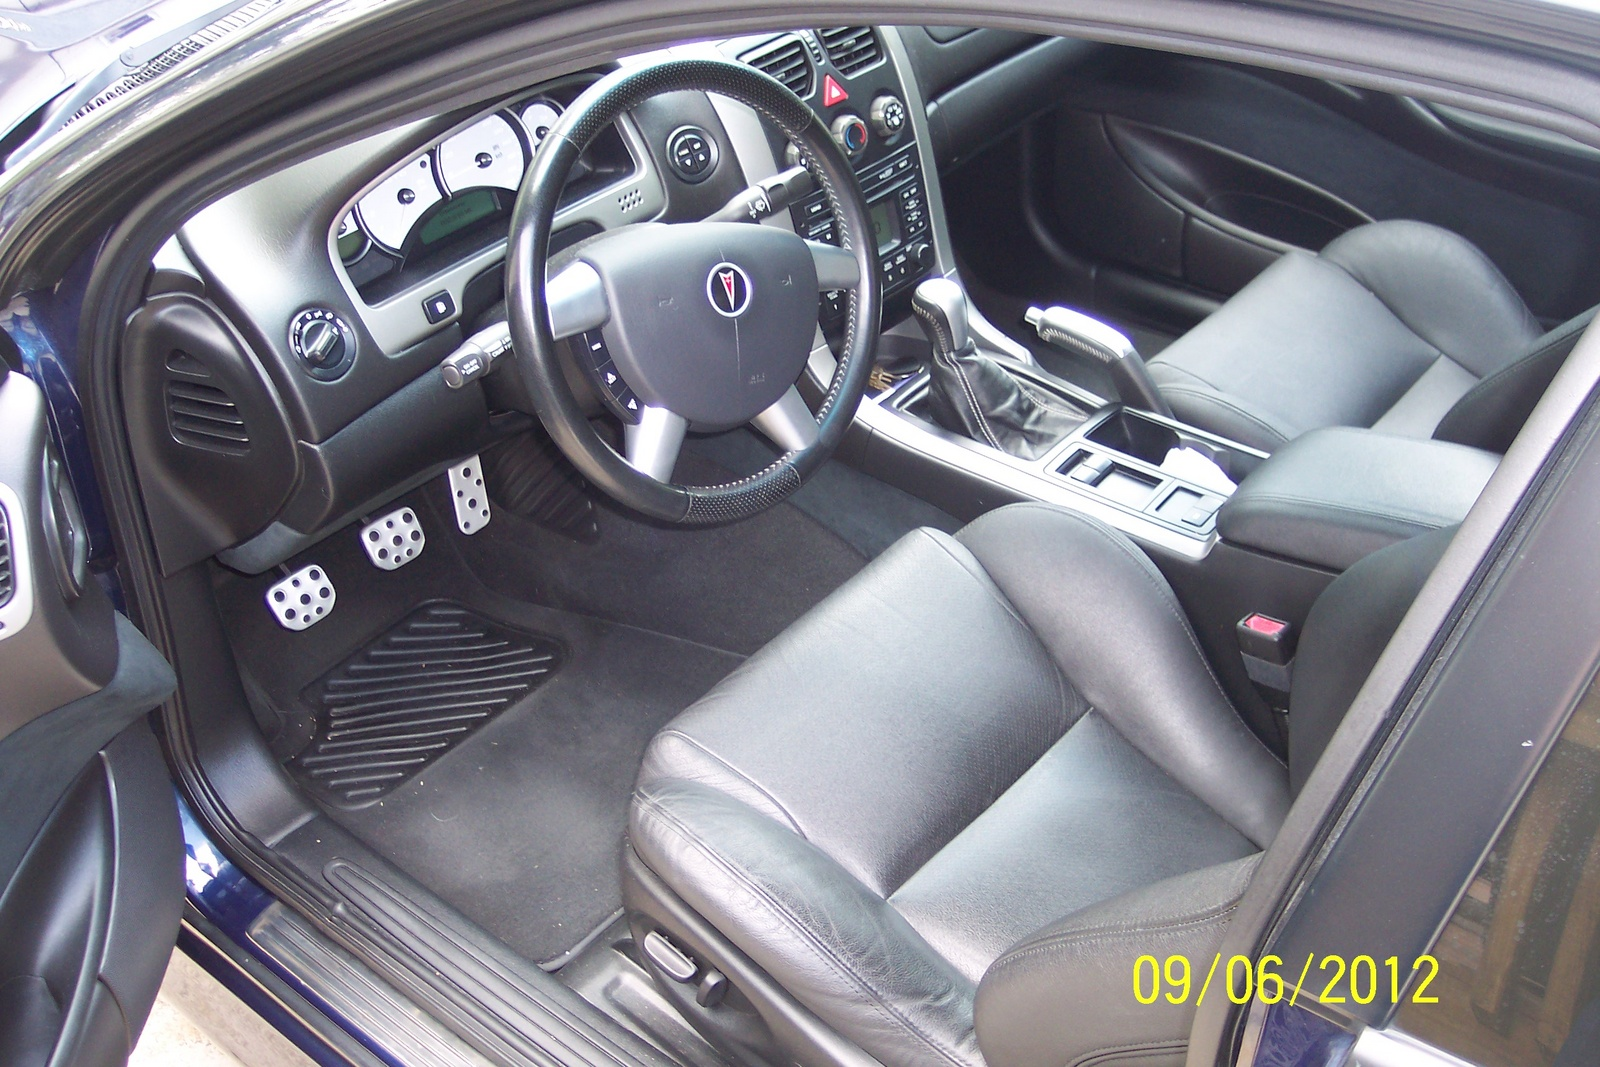 2005 pontiac gto interior pictures cargurus. Black Bedroom Furniture Sets. Home Design Ideas